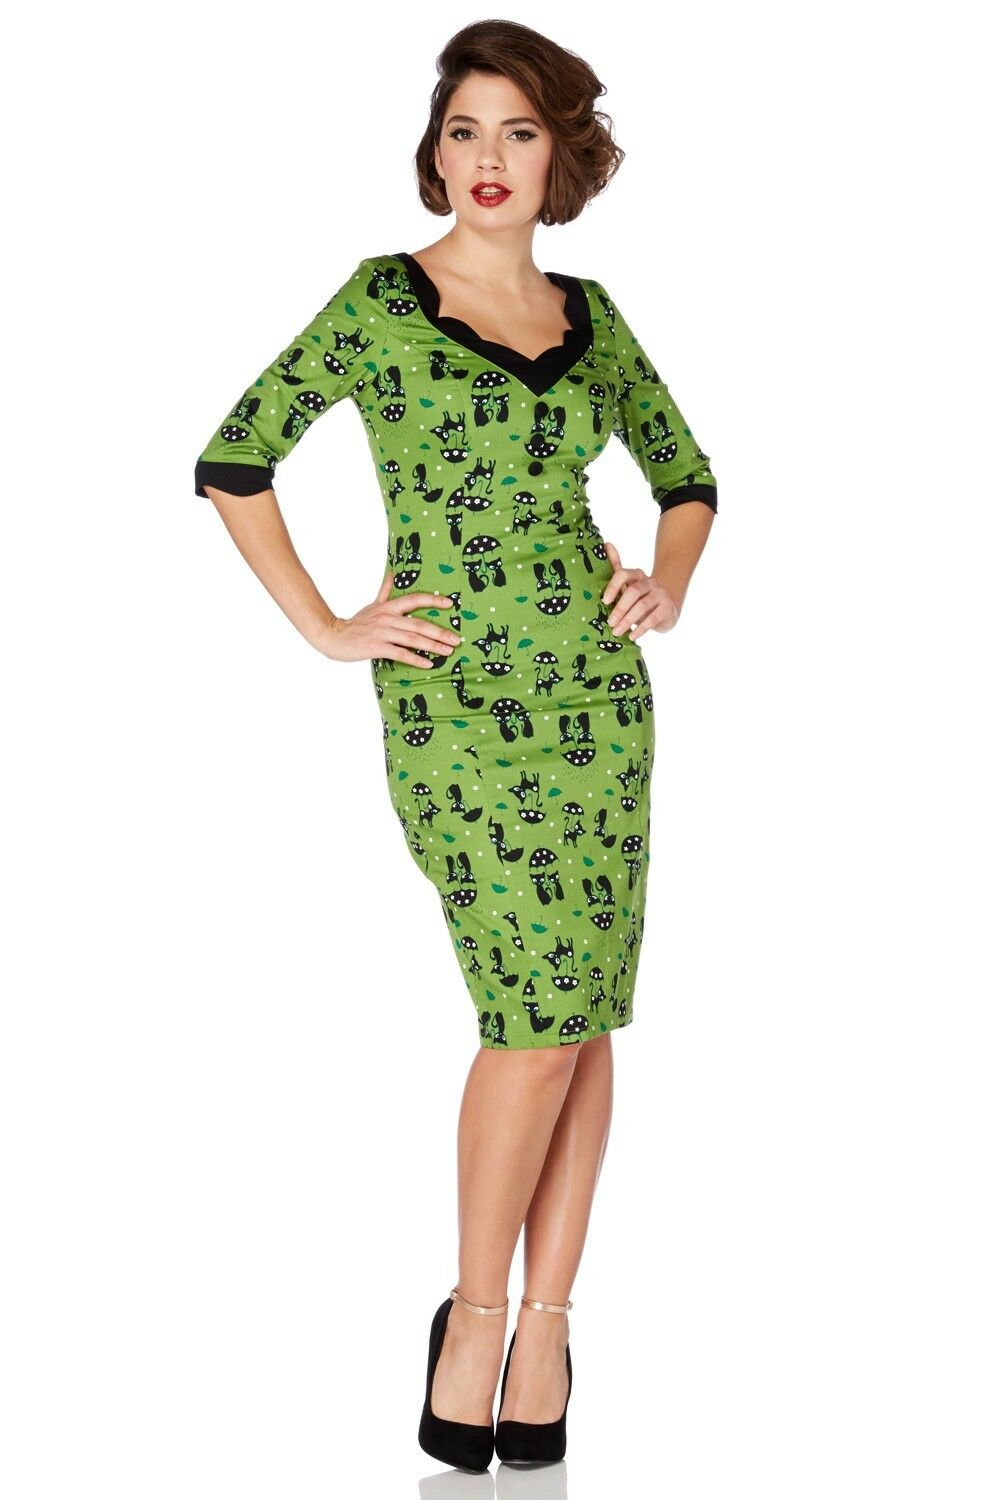 Voodoo Vixen Jade Kat Green Cat in the Rain Wiggle Dress